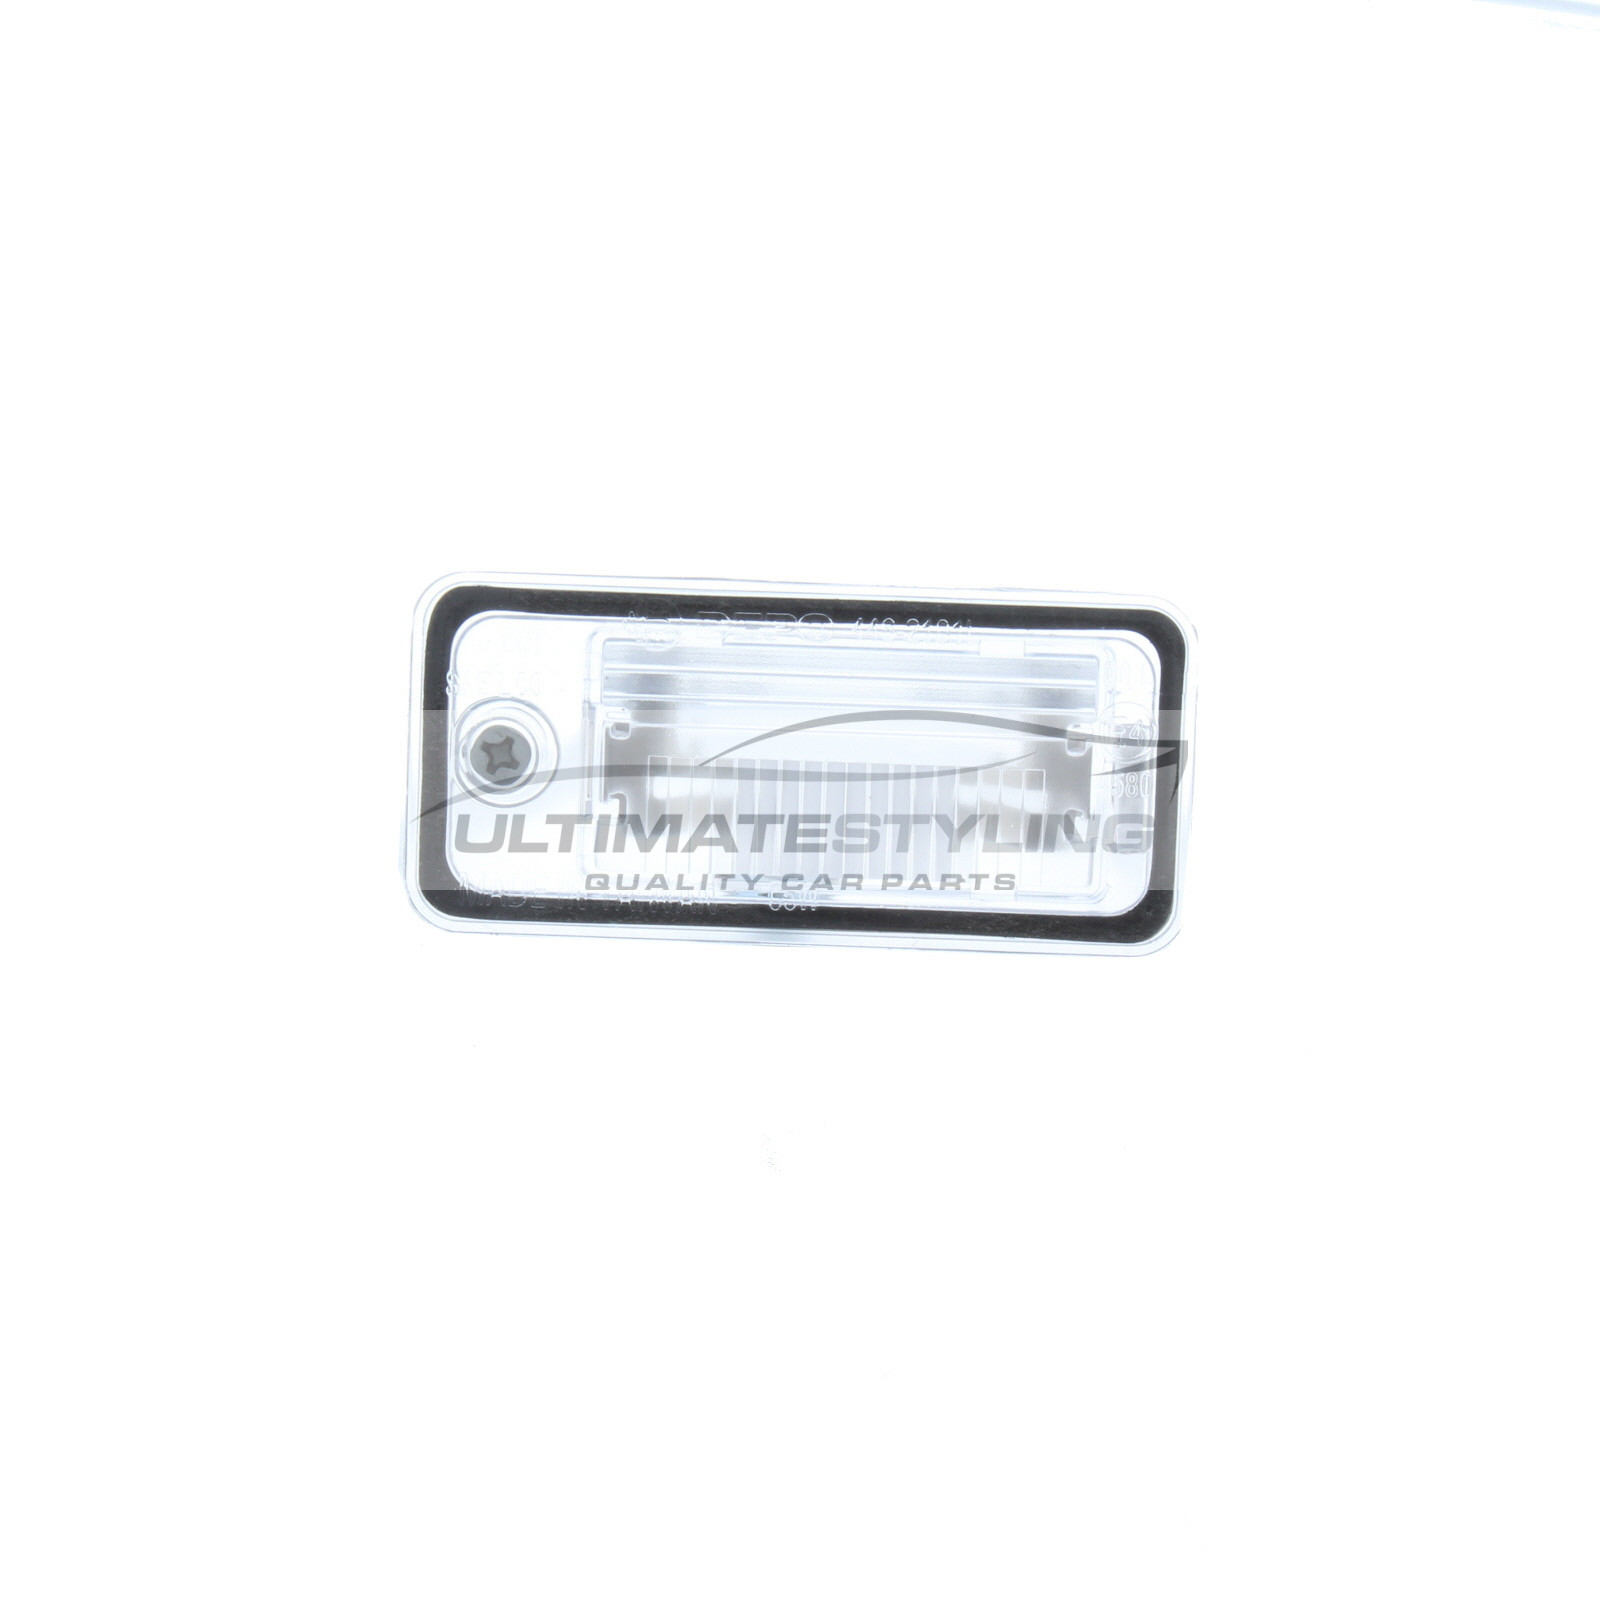 Rear Number Plate Light for Audi A4